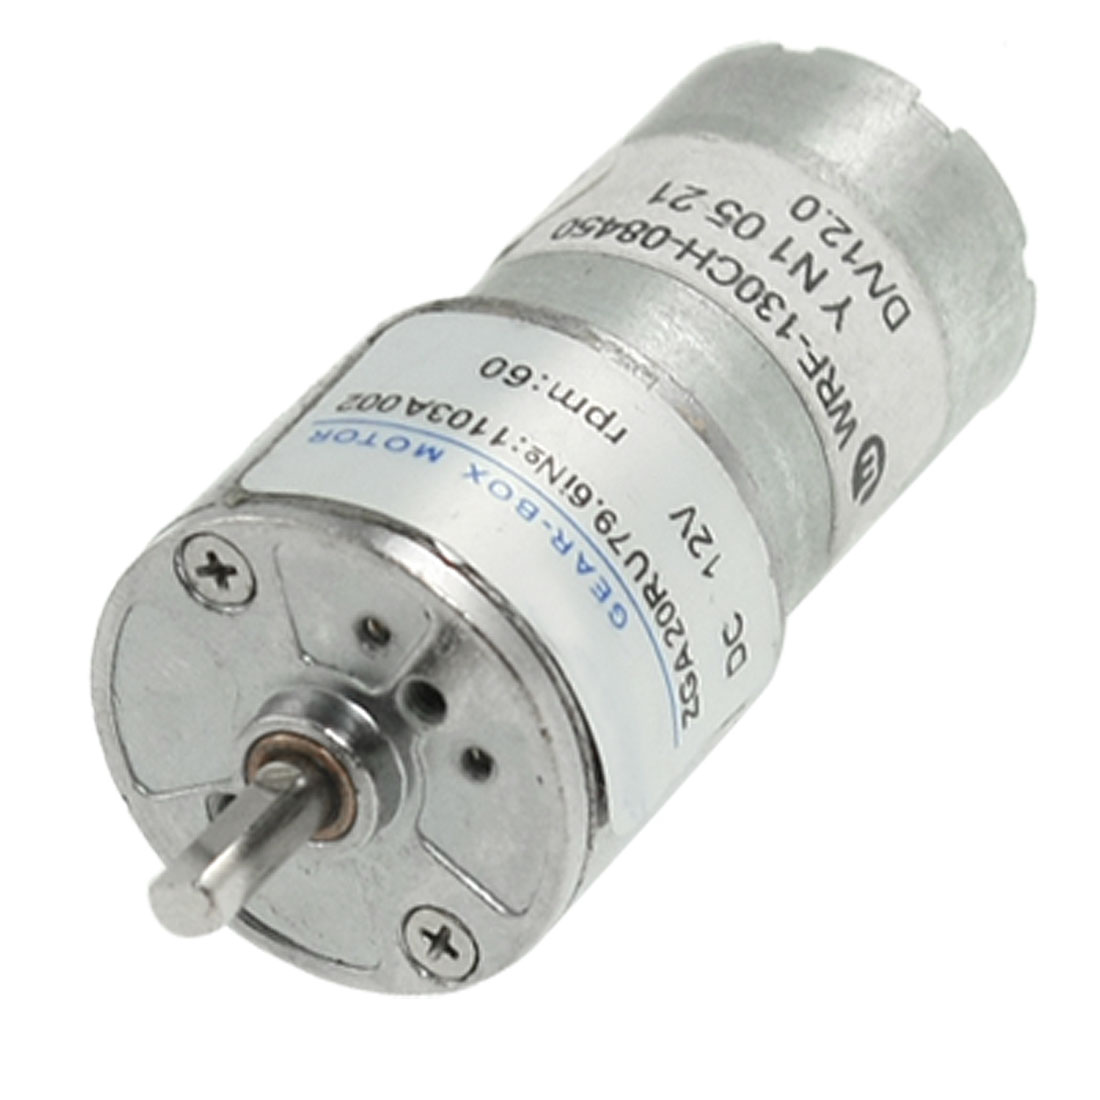 3mm-Shaft-1-55kg-cm-60RPM-12V-0-12A-DC-Geared-Gear-Box-Motor-Replacement